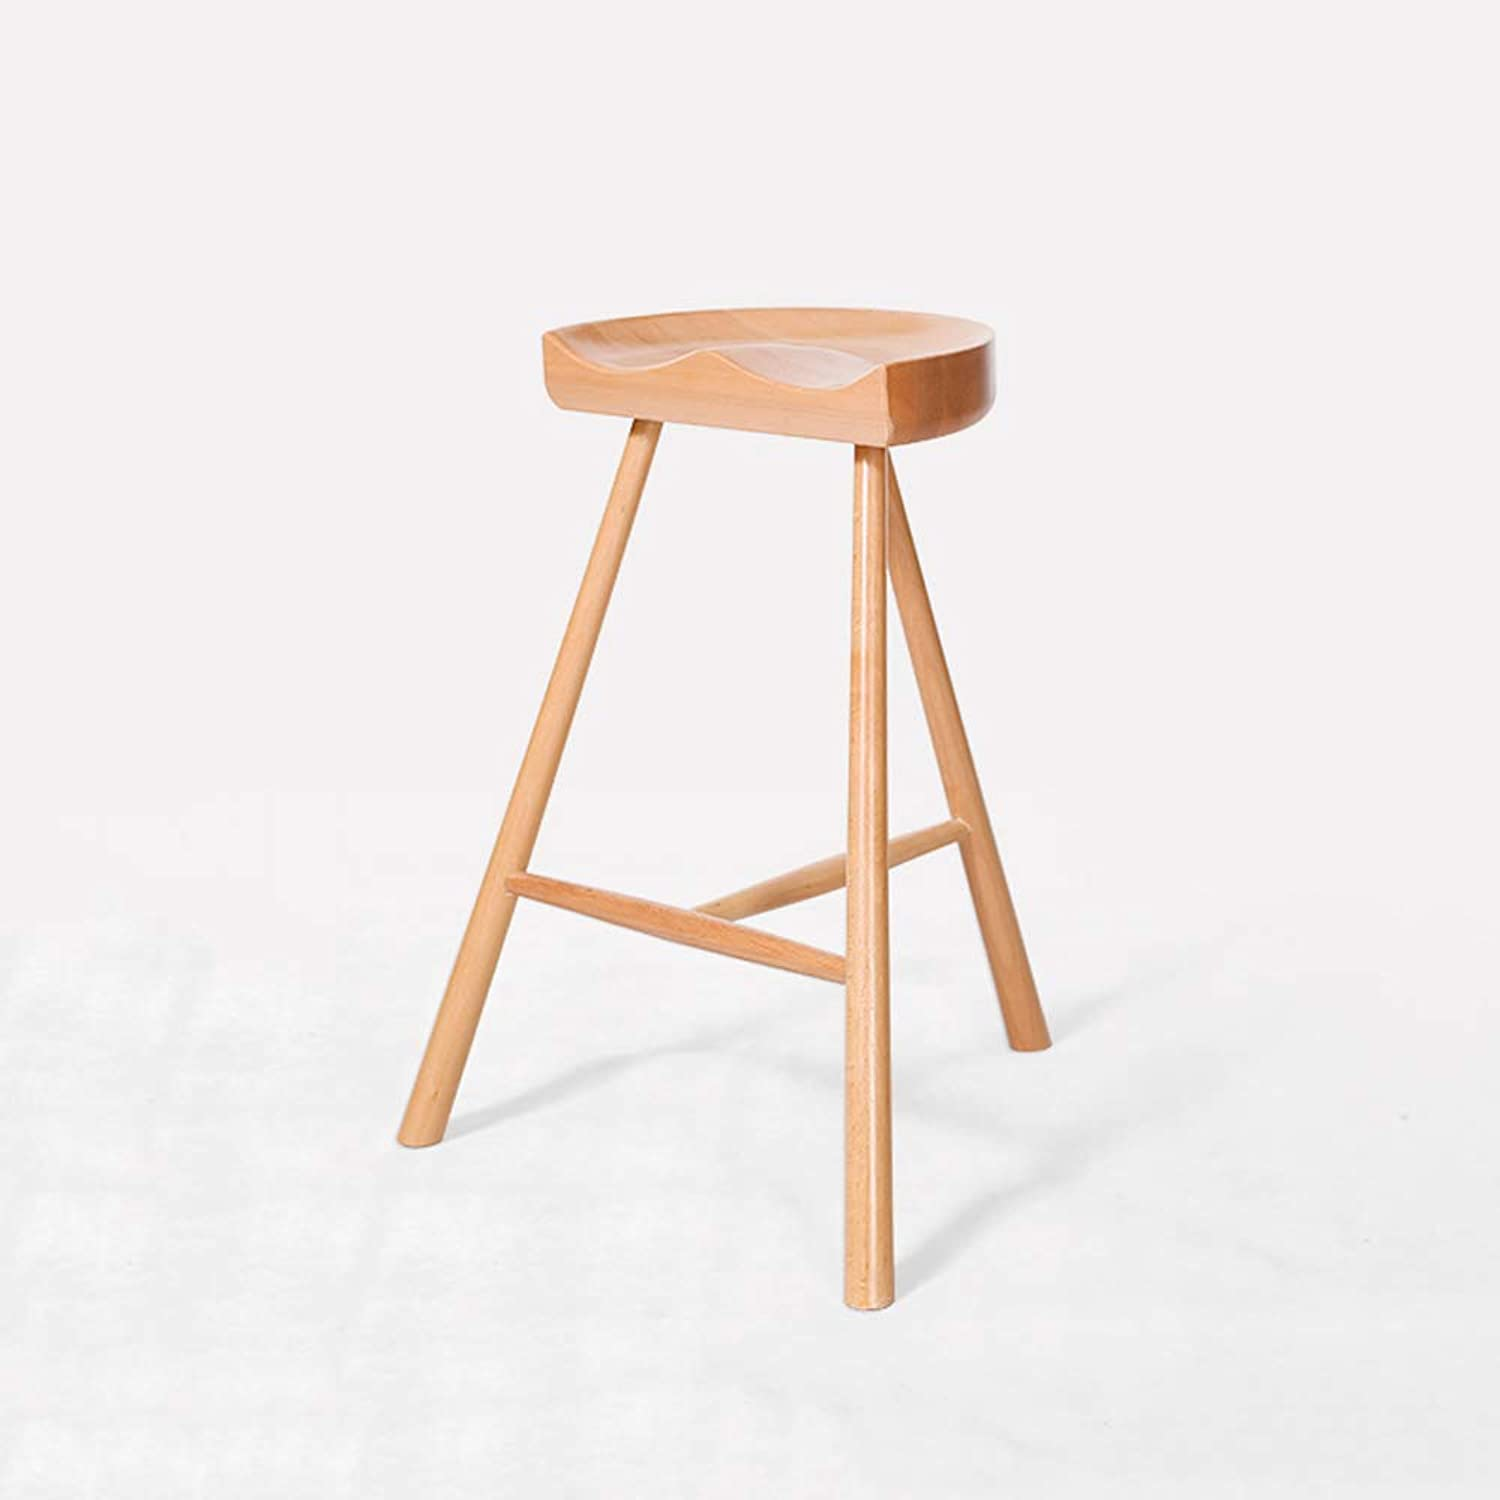 LLYU Solid Wood high Stool bar Stool bar Chair Nordic Simple bar Stool Counter Kitchen Cafe Dining Stool (color   A)